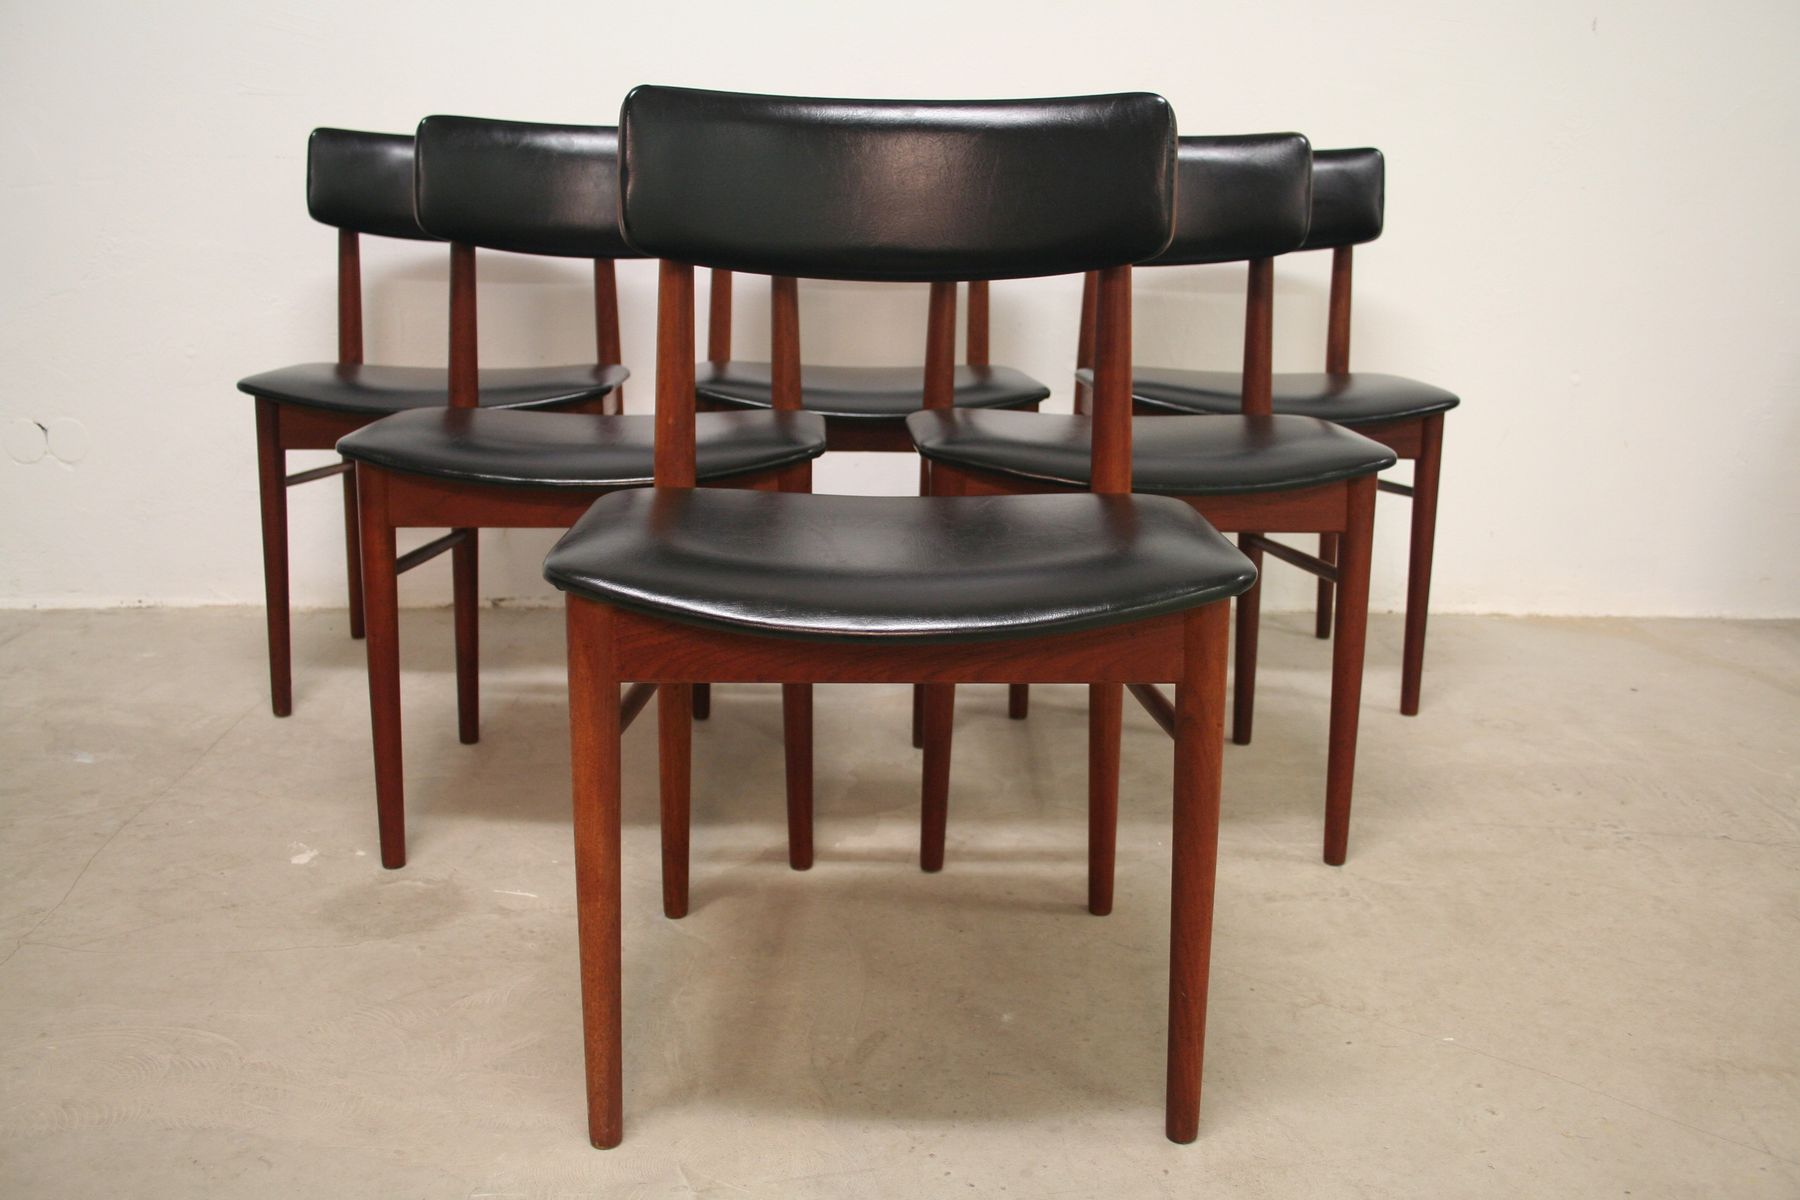 Teak Dining Chairs by S Chrobat for Sax Mobler 1960s Set of 4